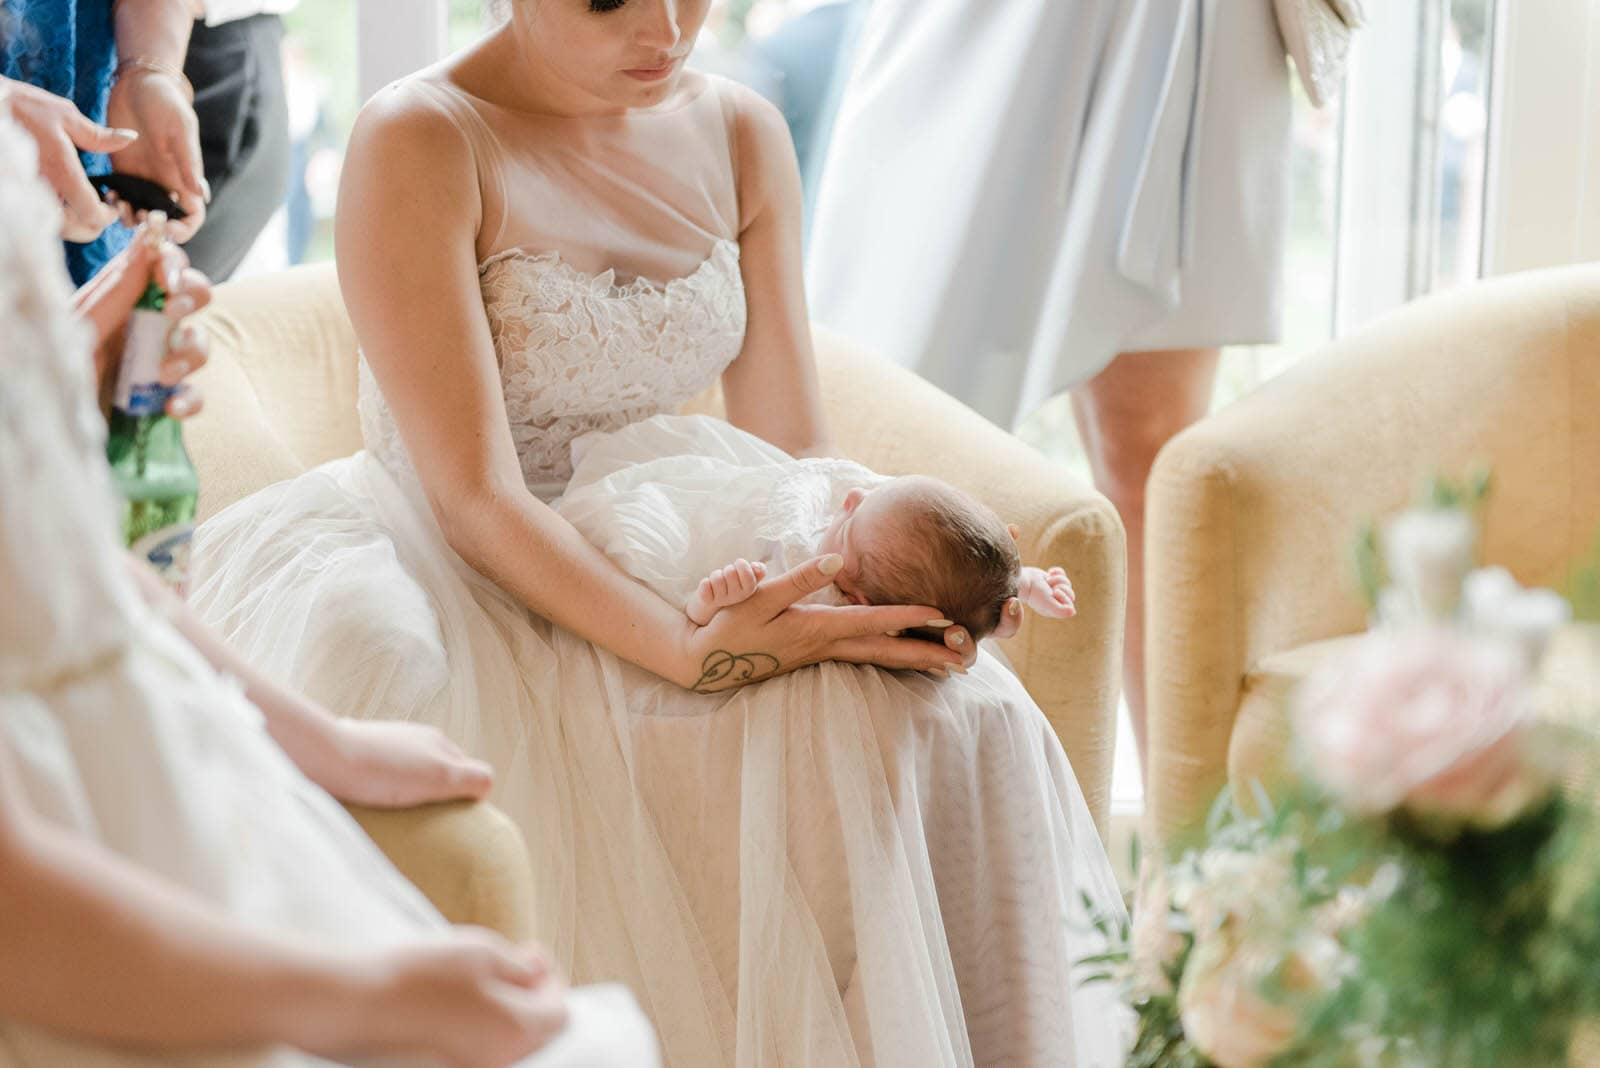 Bride holding a baby at wedding reception at Oaklands Hall Hotel in Grimsby